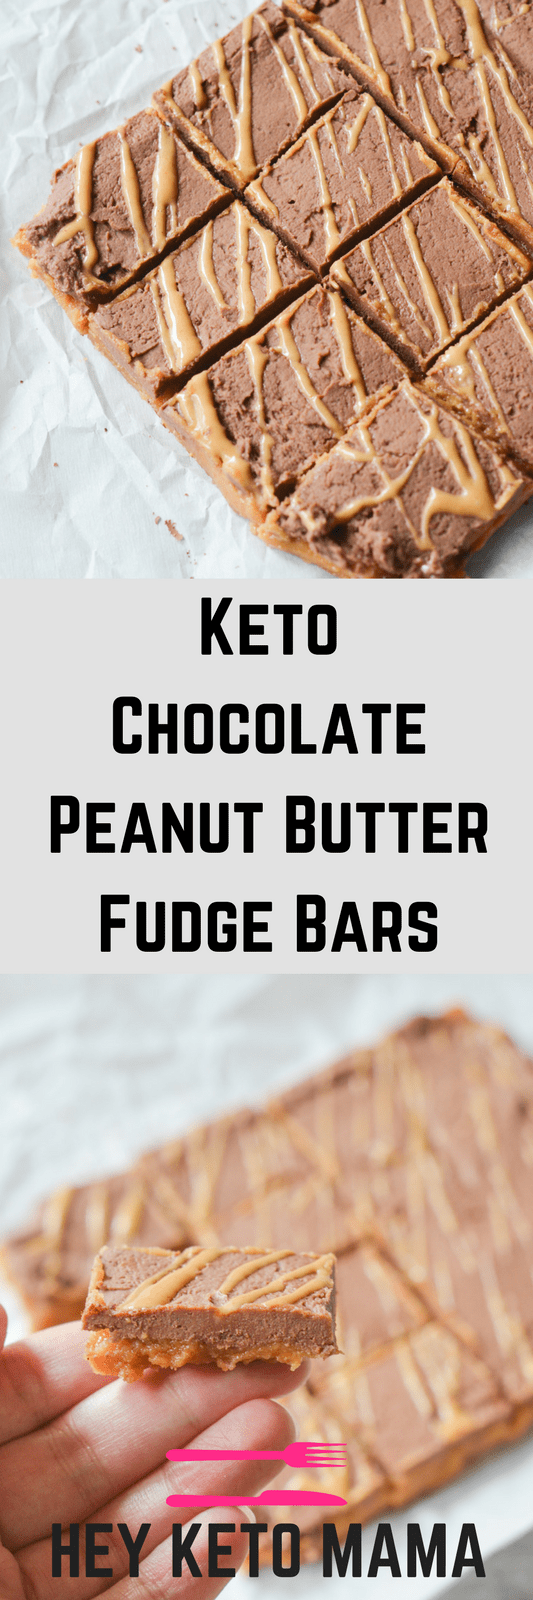 These Keto Chocolate Peanut Butter Fudge Bars are an easy to make indulgence that will satisfy your sweet tooth in a guilt free way.   heyketomama.com